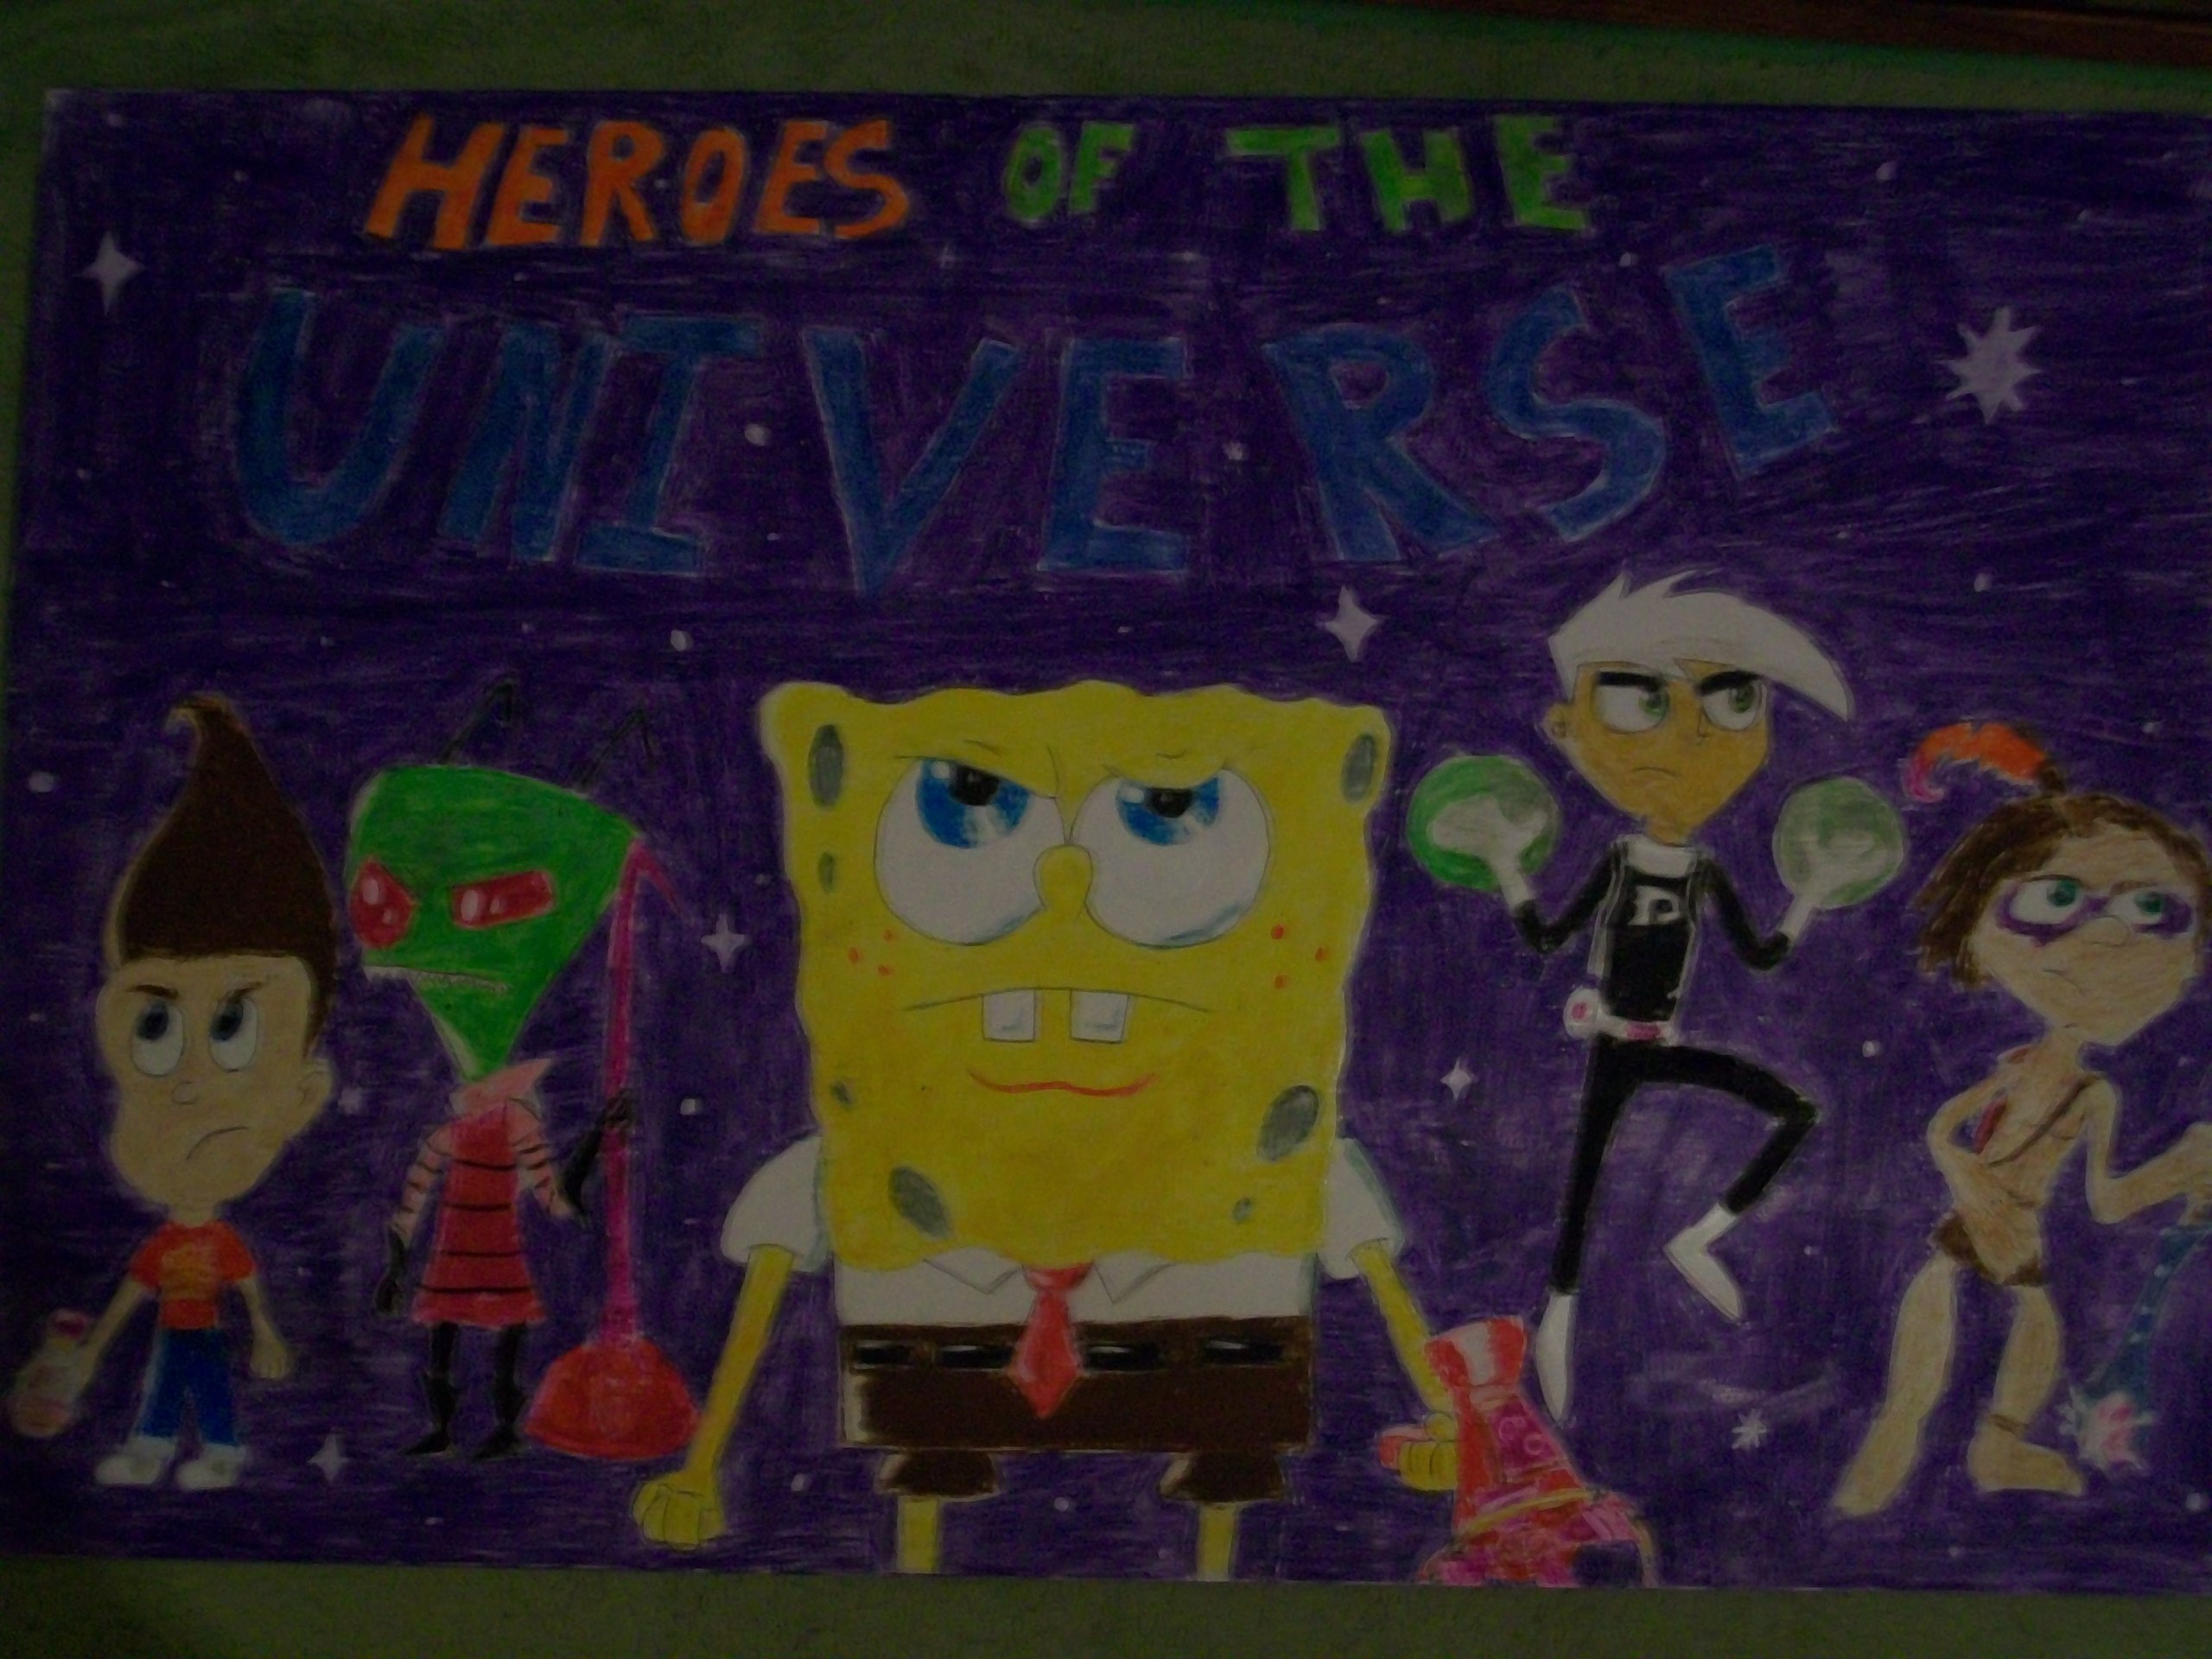 Heroes of the Universe